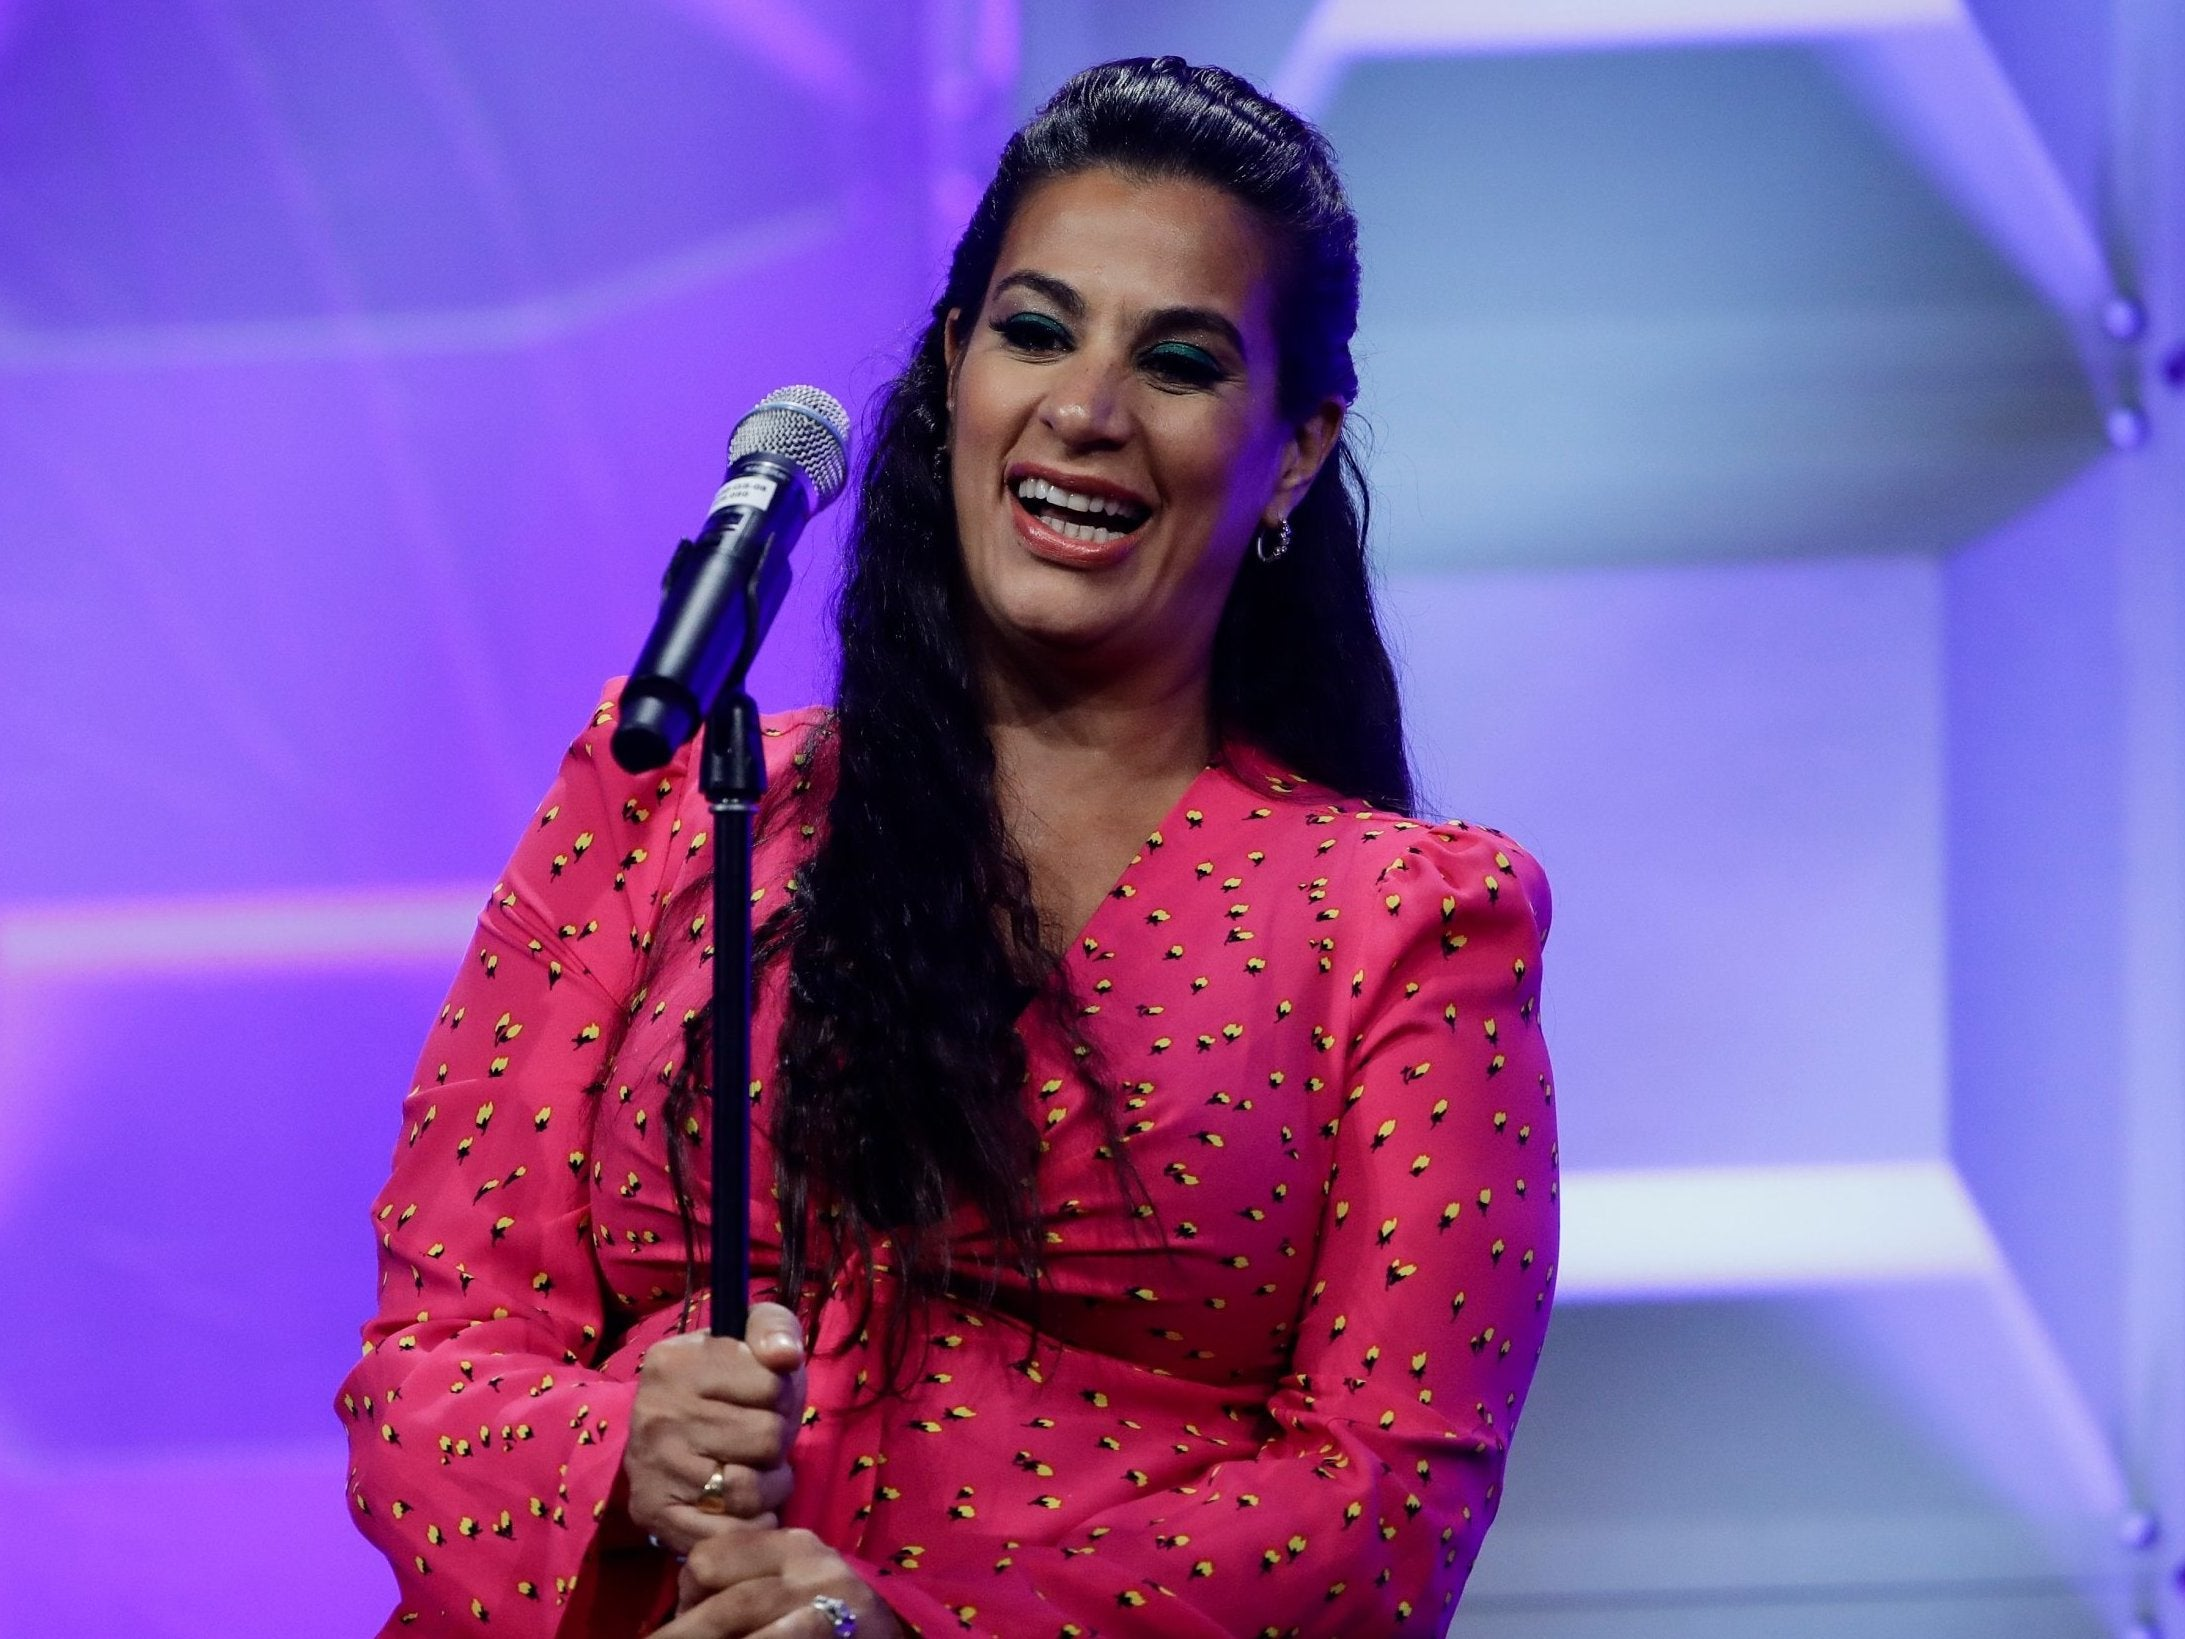 pictures Maysoon Zayid